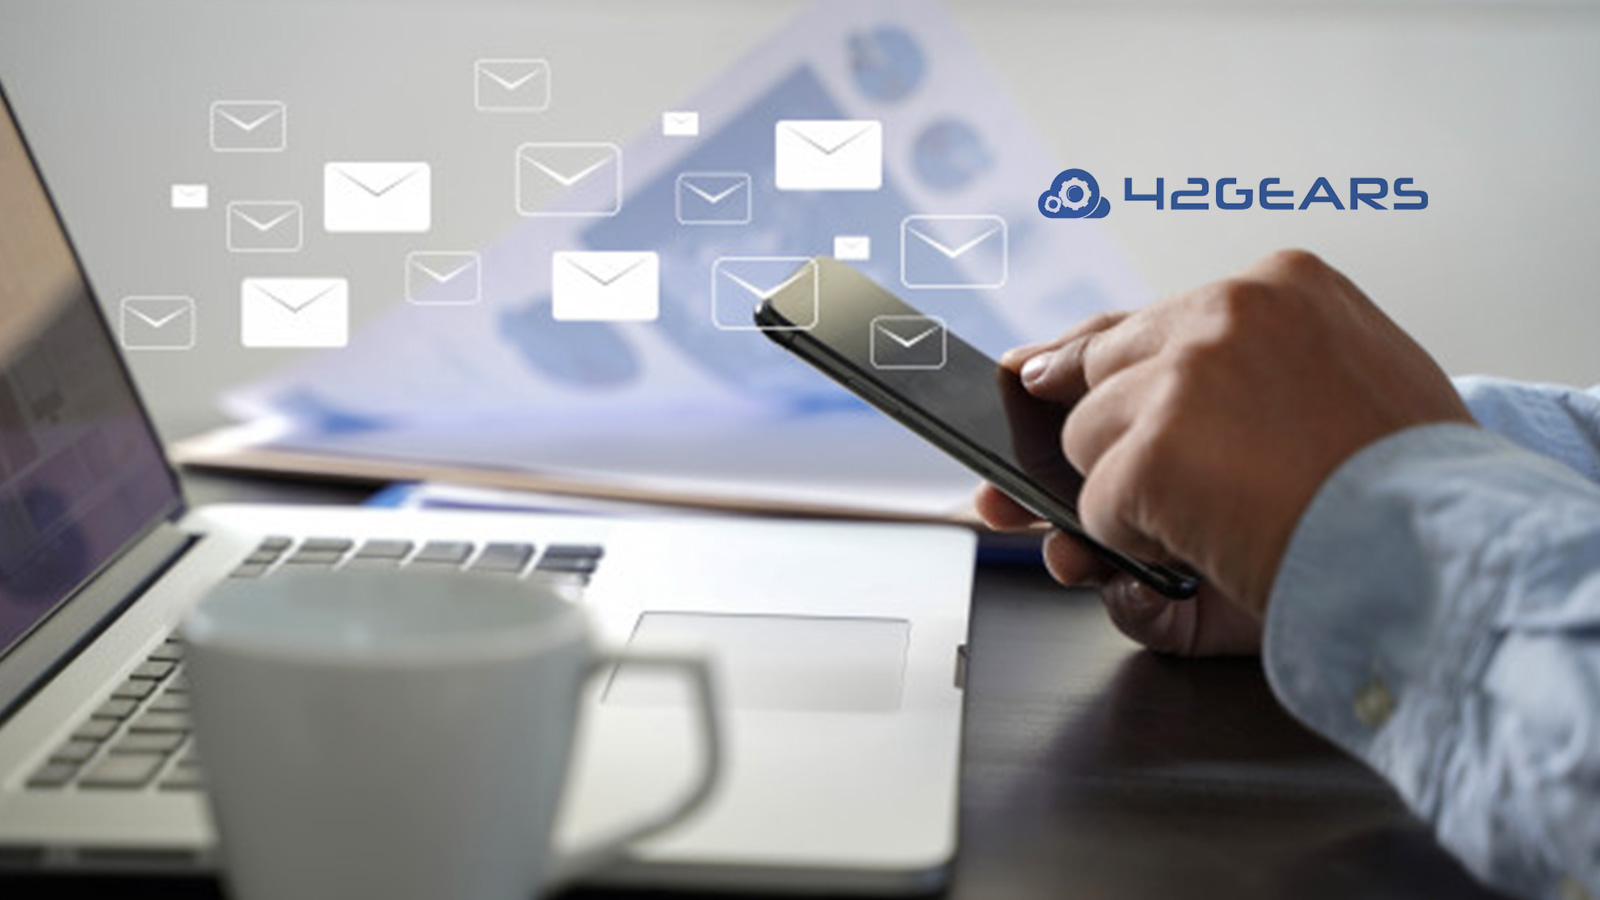 42Gears Takes Mobile Email Management to the Next Level